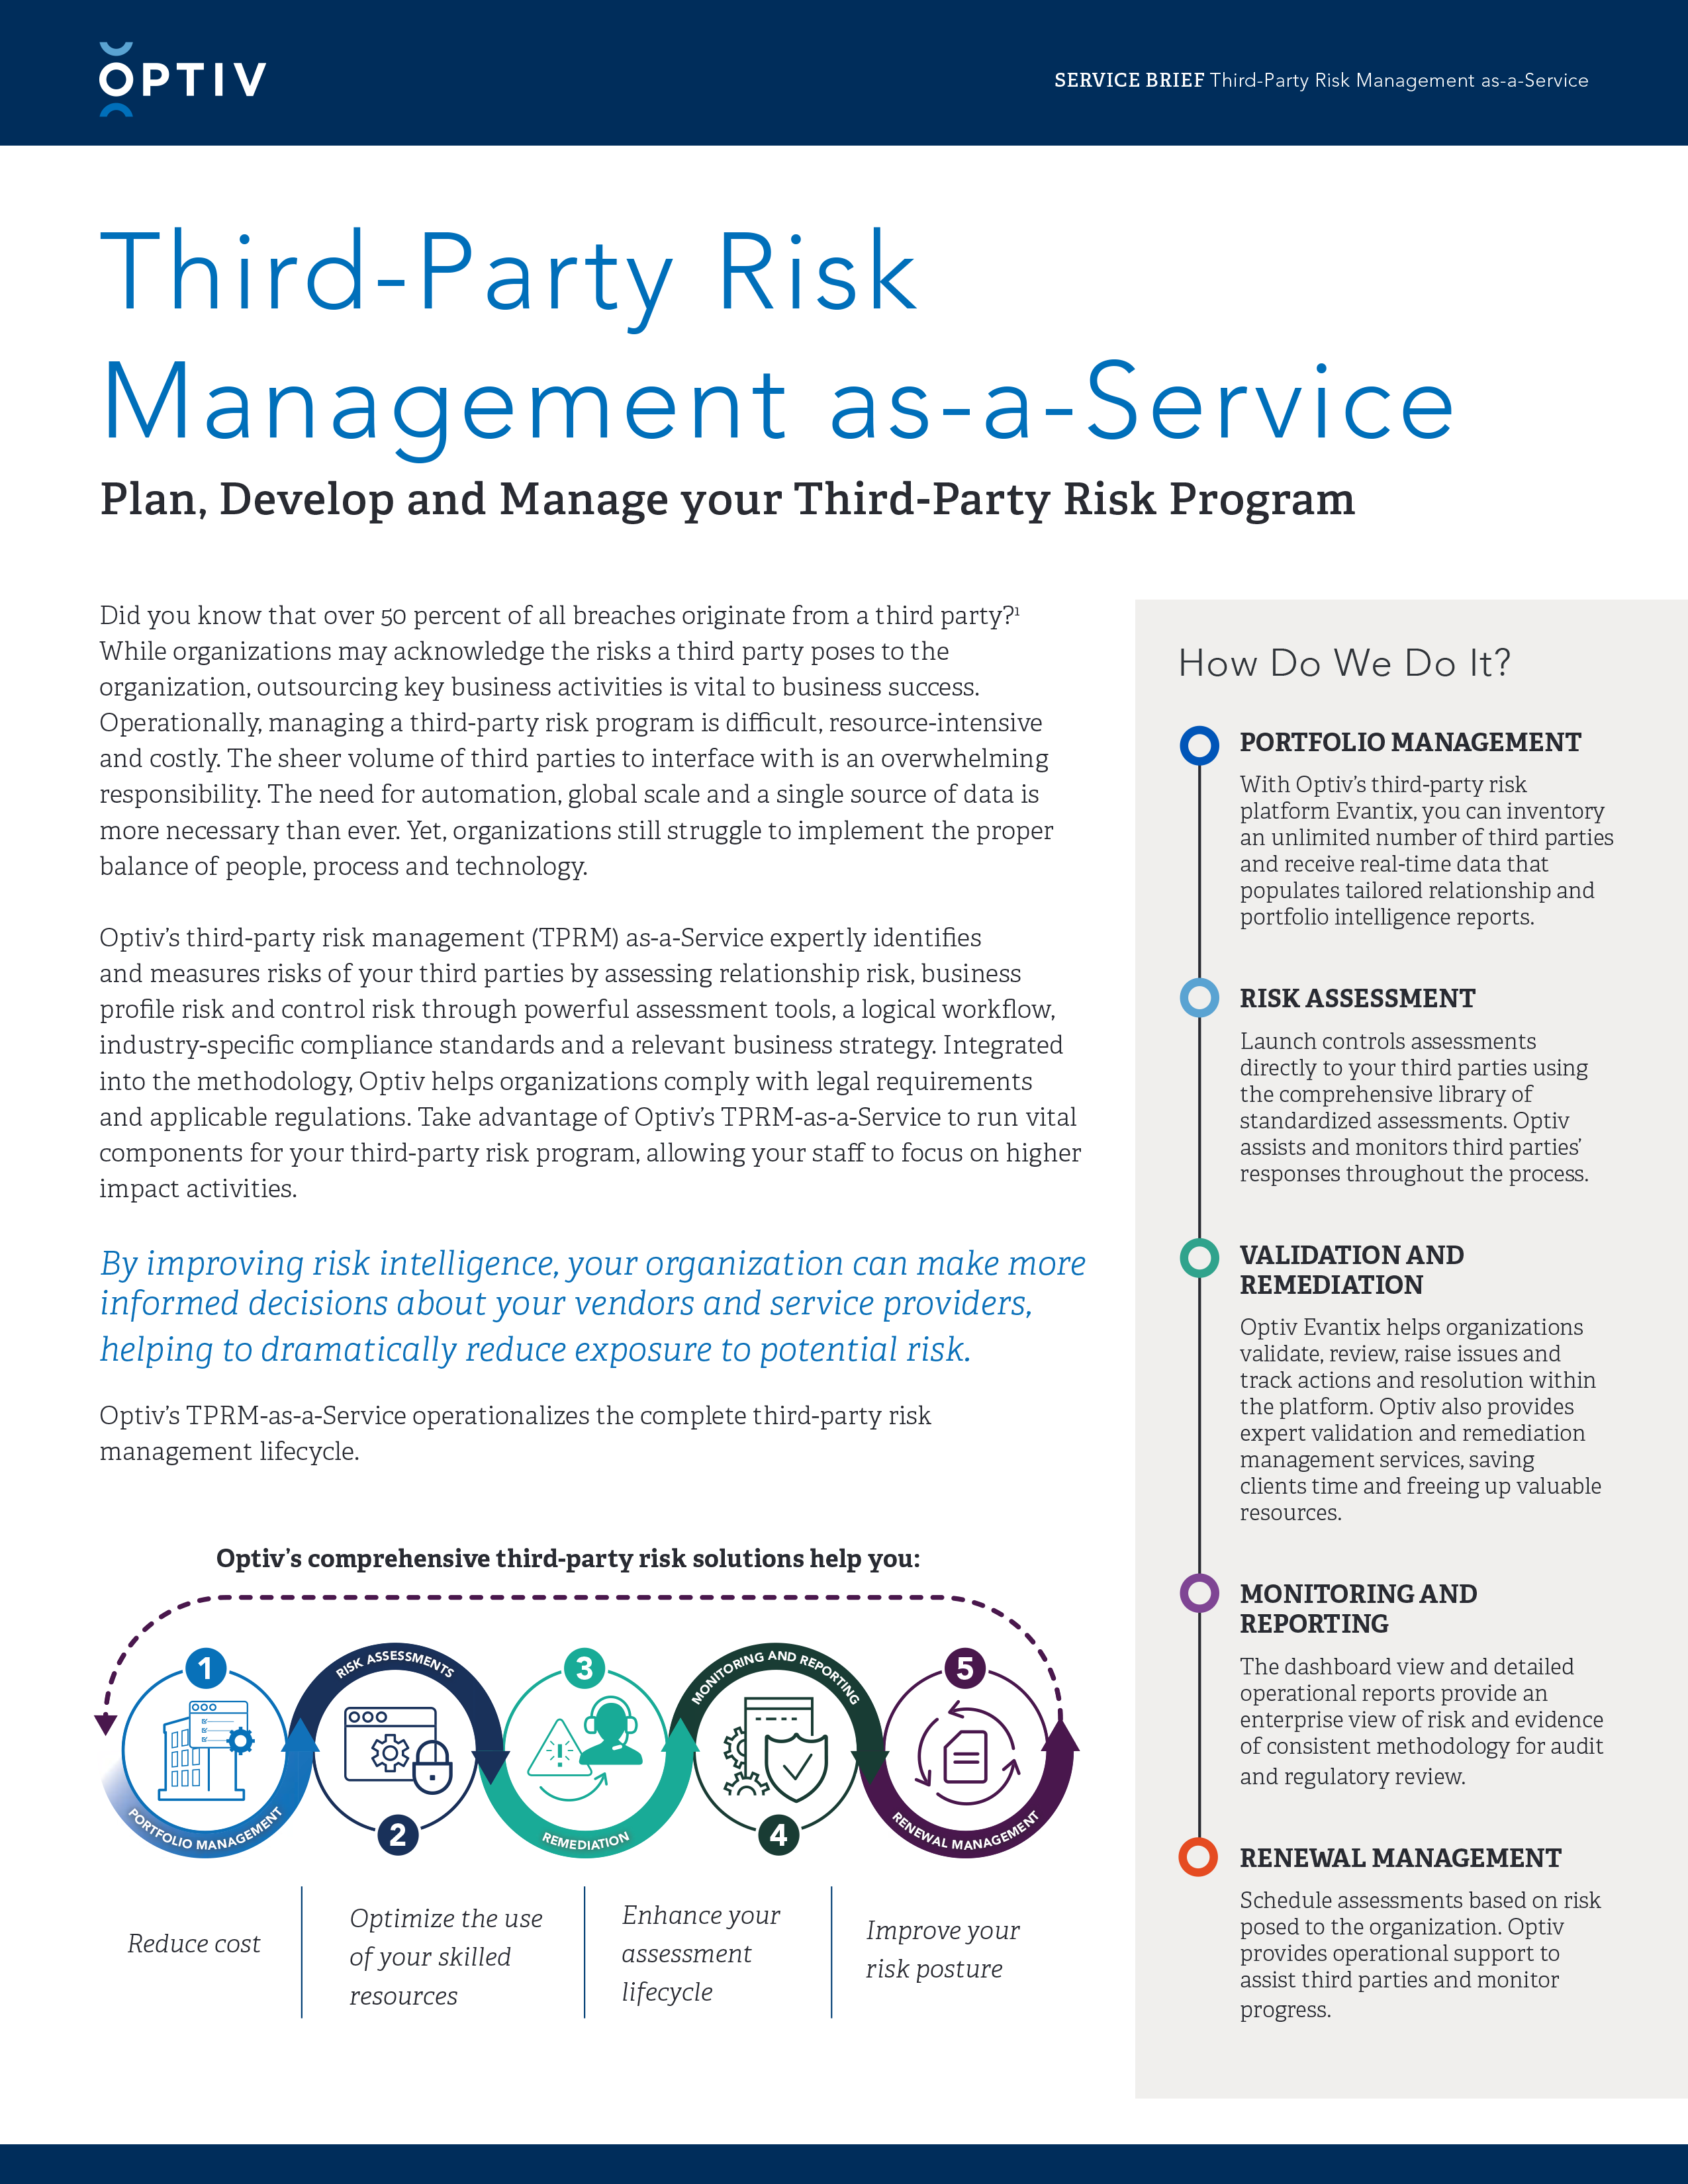 Third-Party Risk Management-as-a-Service